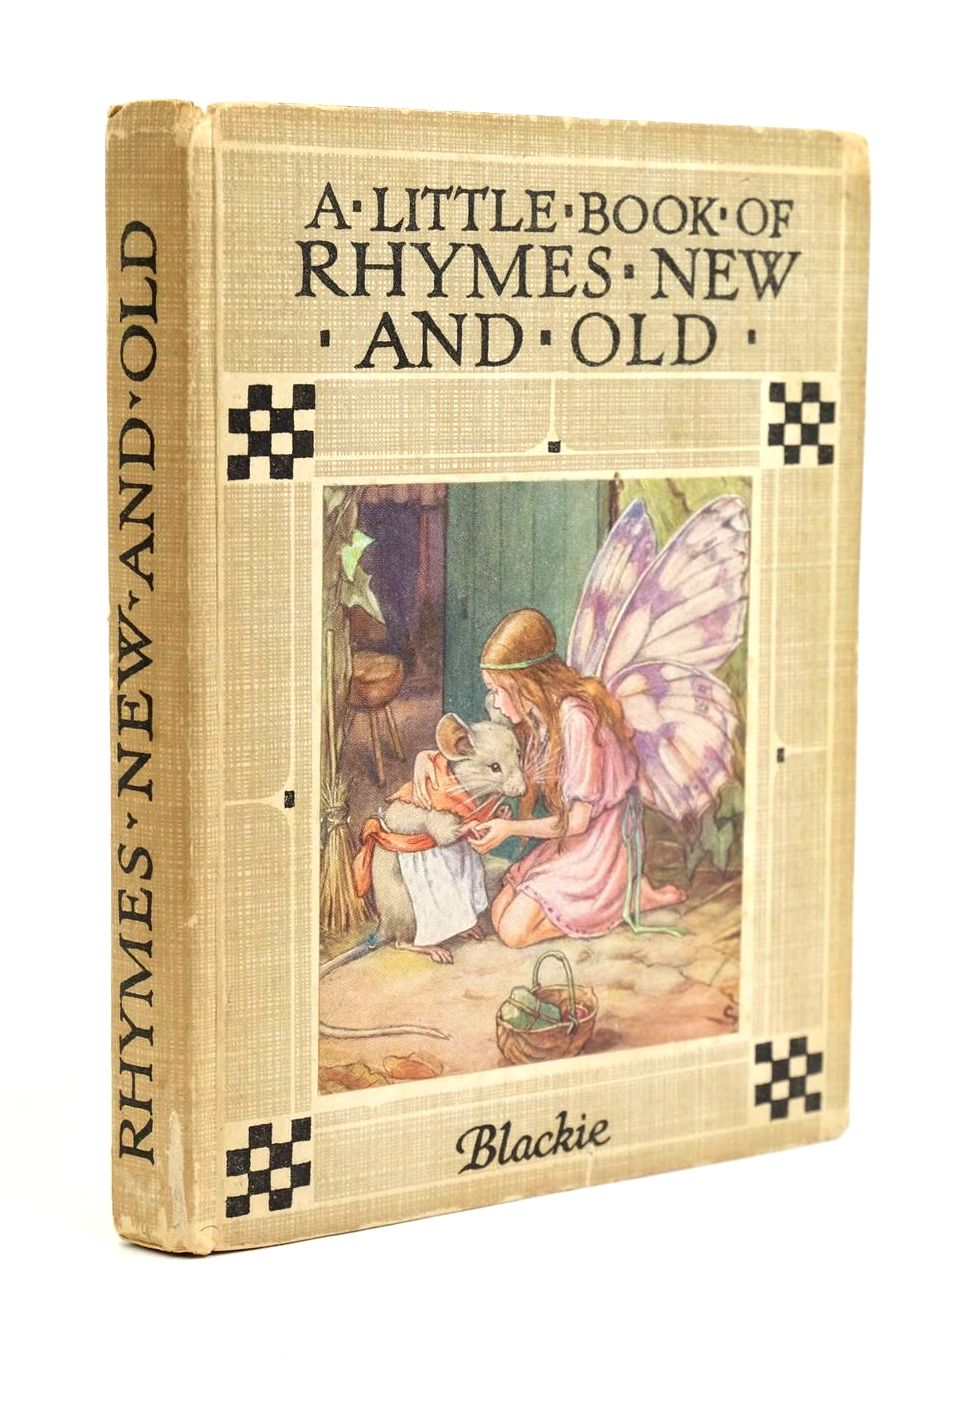 Photo of A LITTLE BOOK OF RHYMES NEW AND OLD written by Barker, Cicely Mary illustrated by Barker, Cicely Mary published by Blackie & Son Ltd. (STOCK CODE: 1321592)  for sale by Stella & Rose's Books